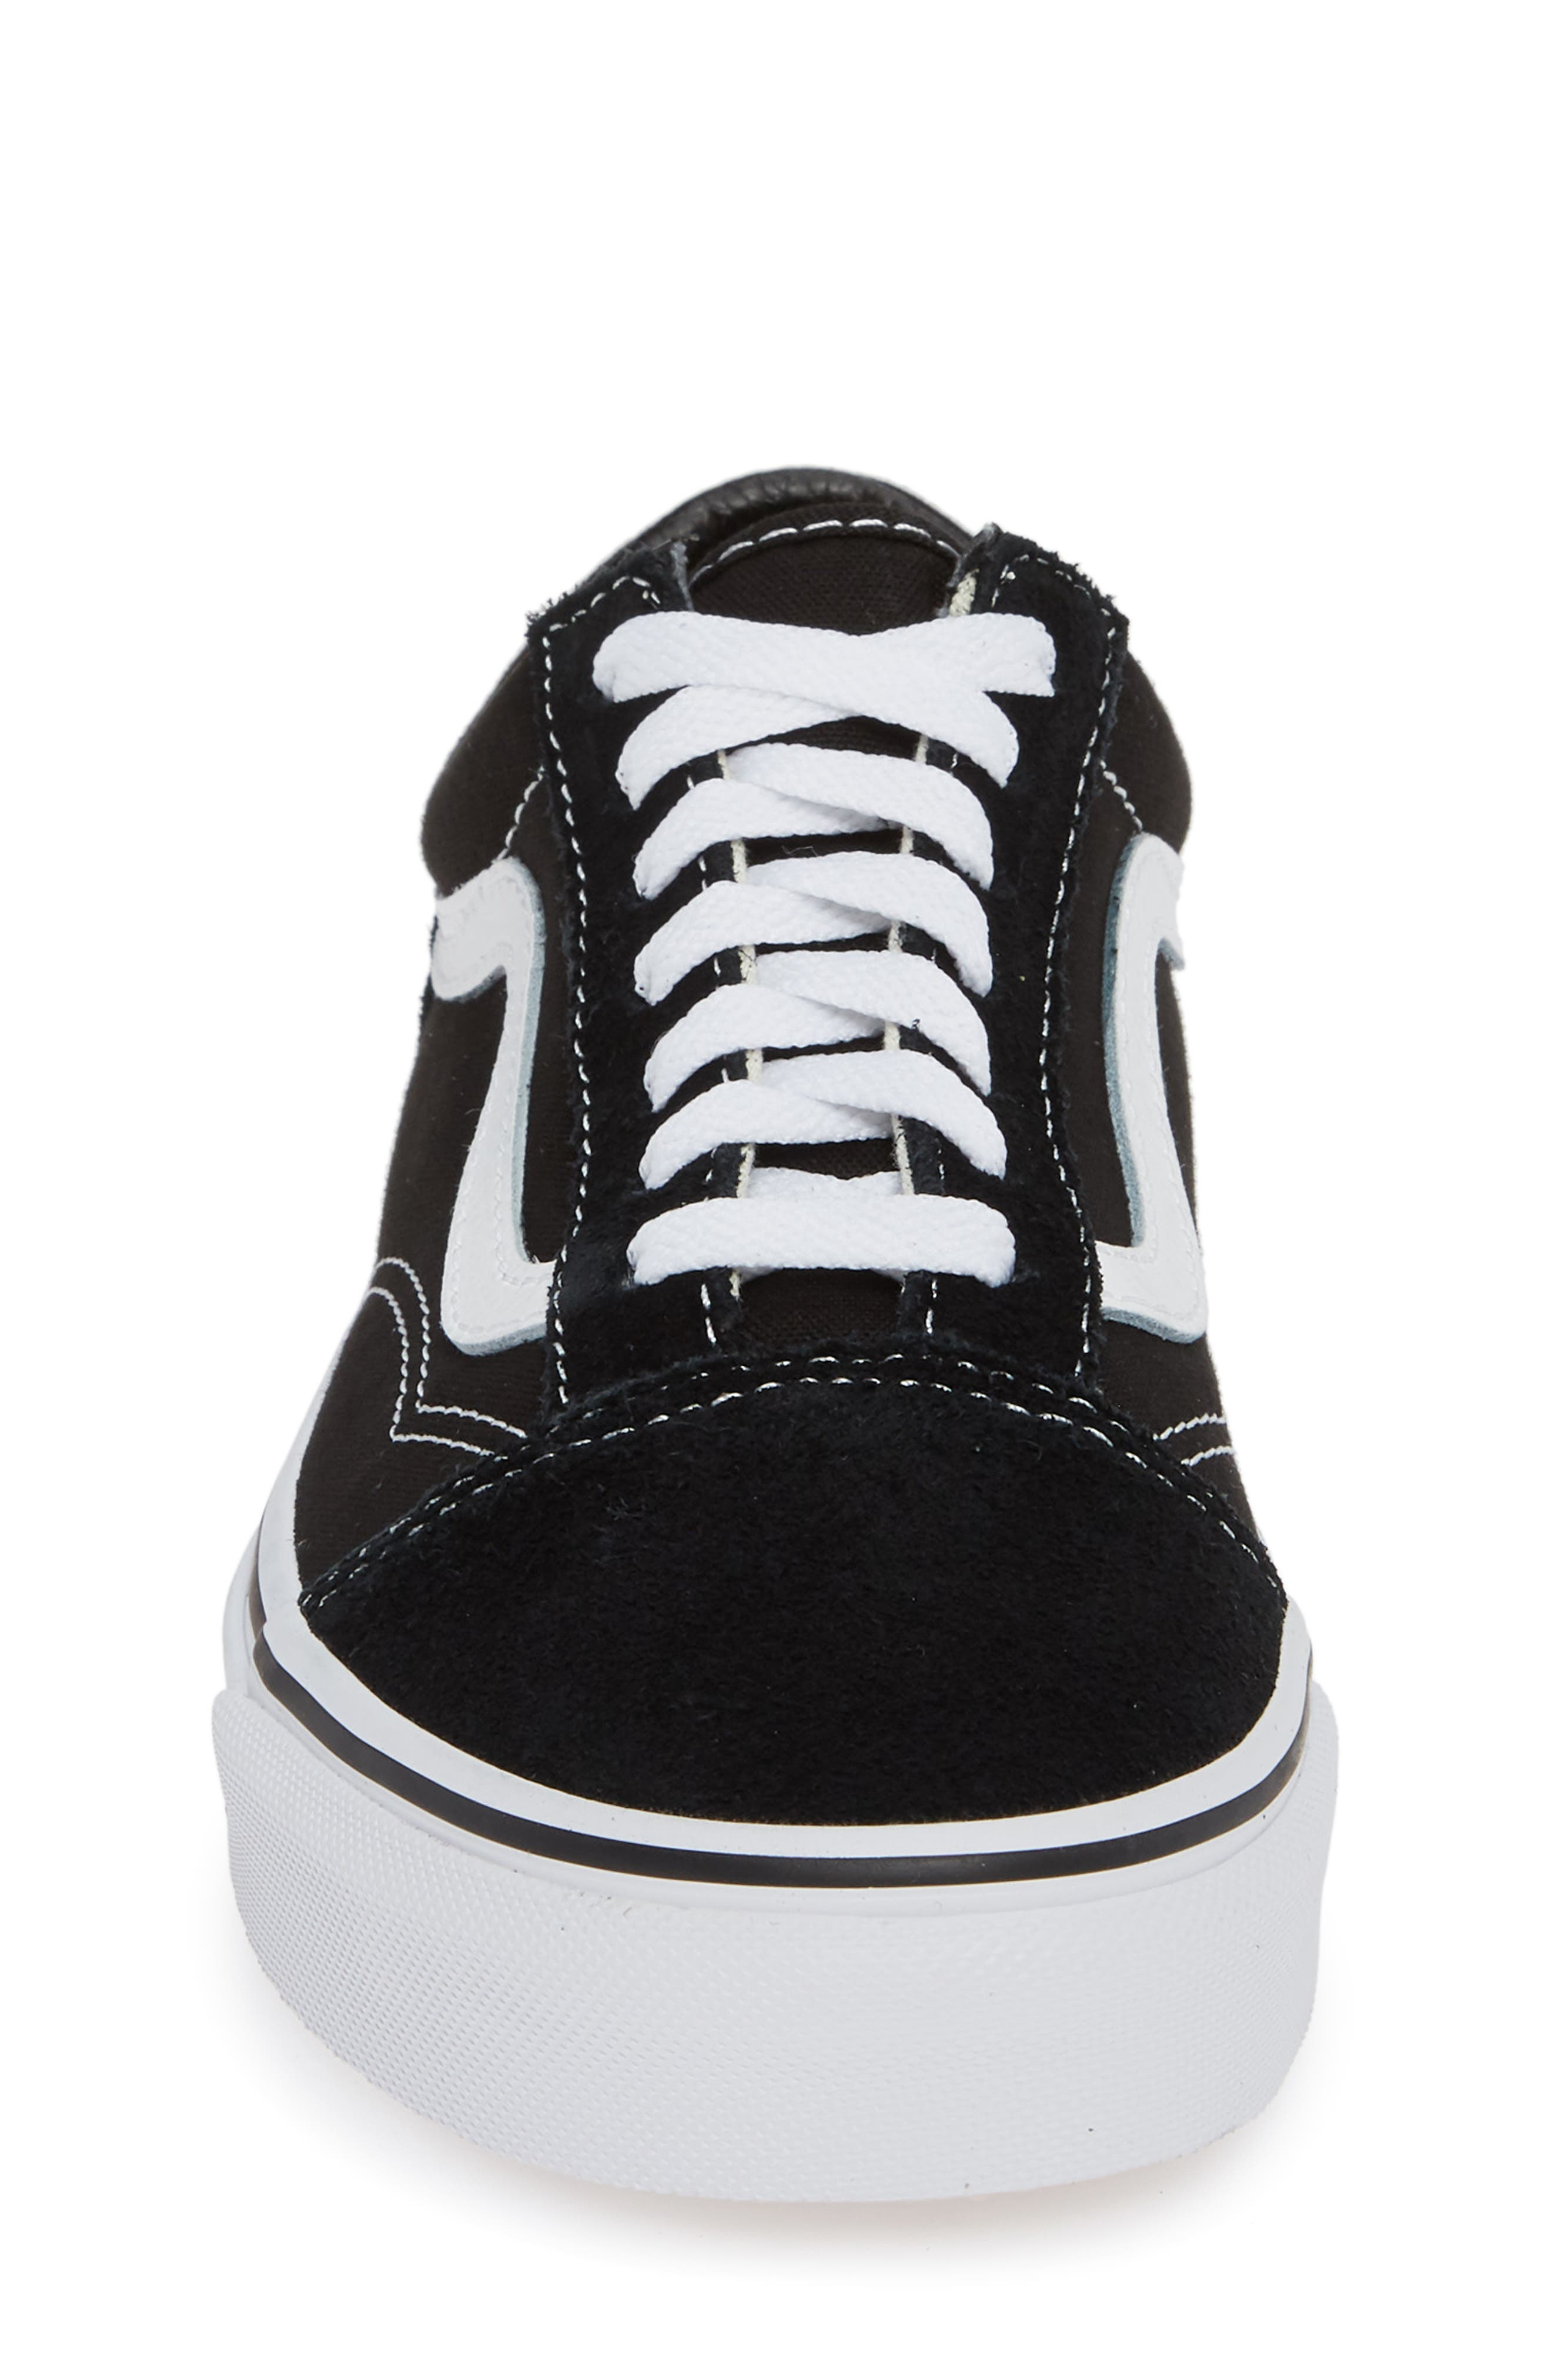 VANS, 'Old Skool' Skate Sneaker, Alternate thumbnail 4, color, BLACK/ WHITE SUEDE CANVAS